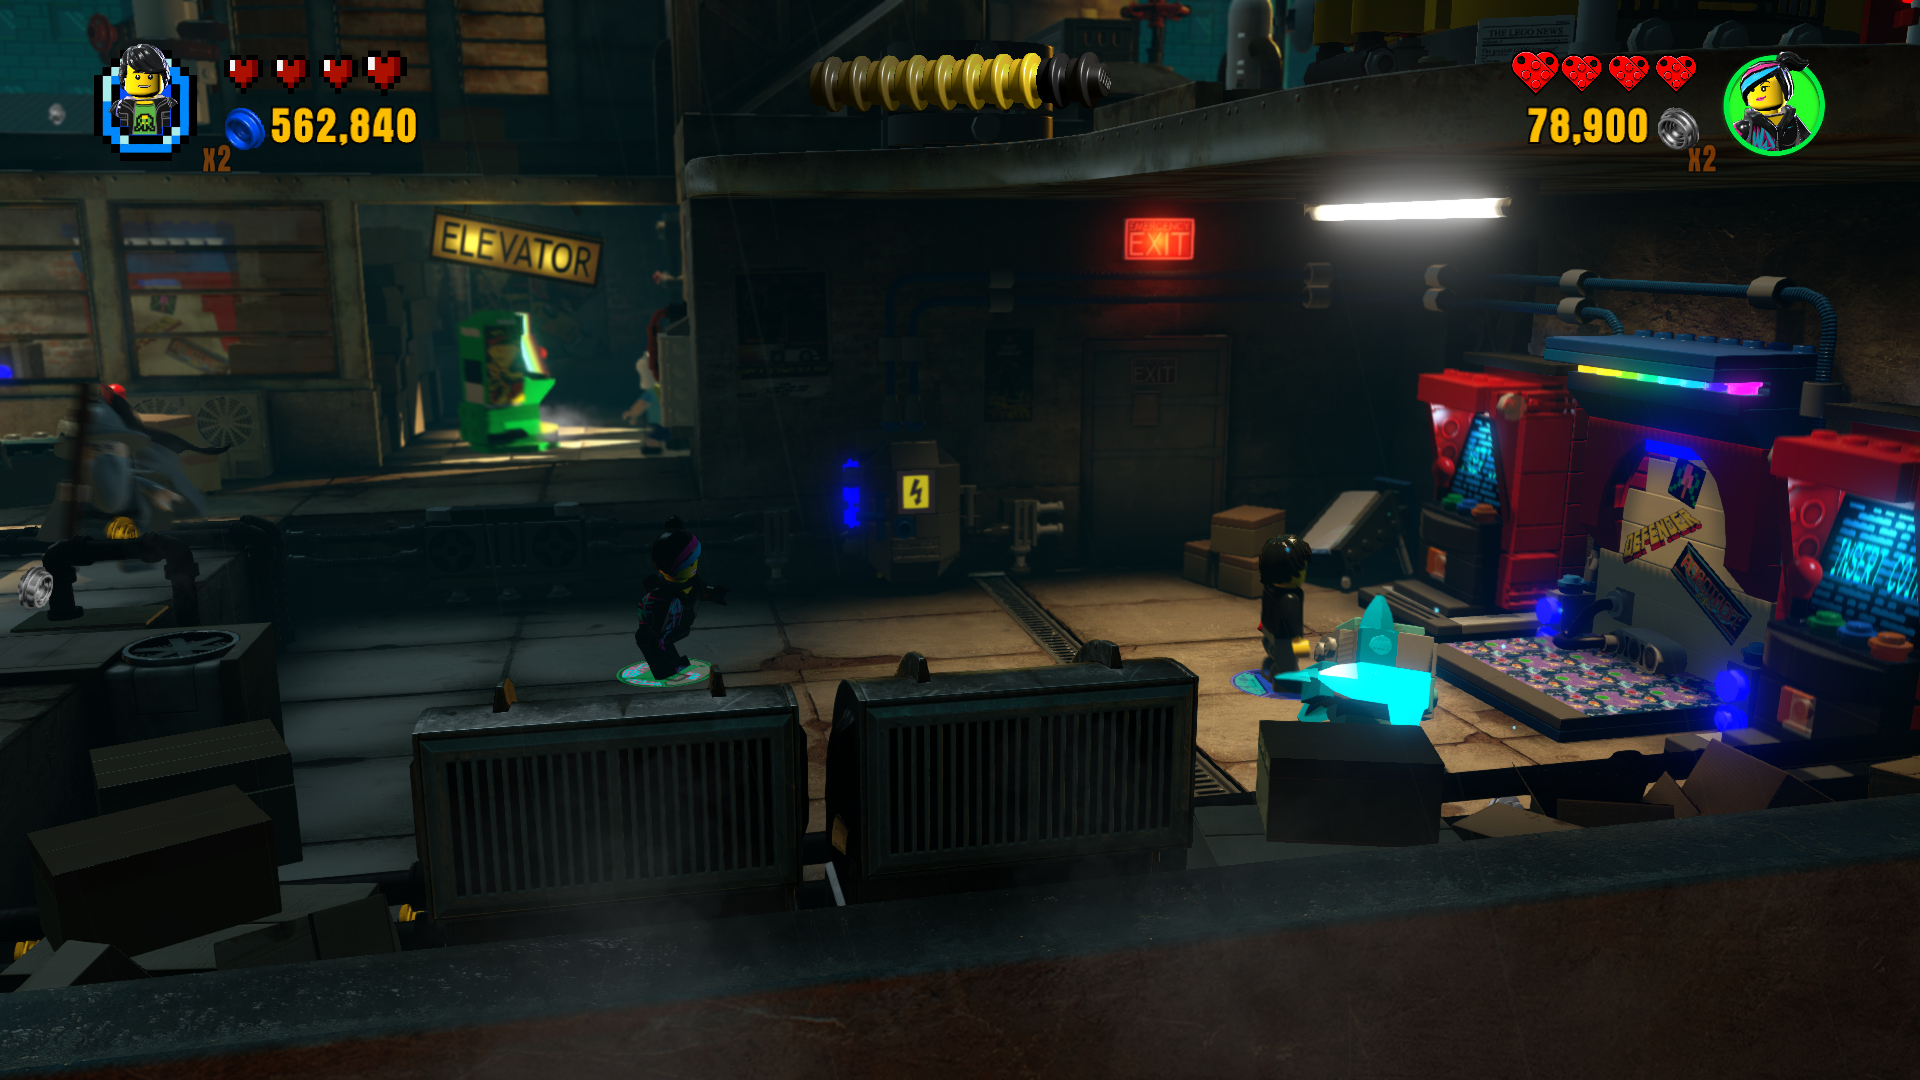 Lego Dimensions: Midway Arcade (PS4): COMPLETED!